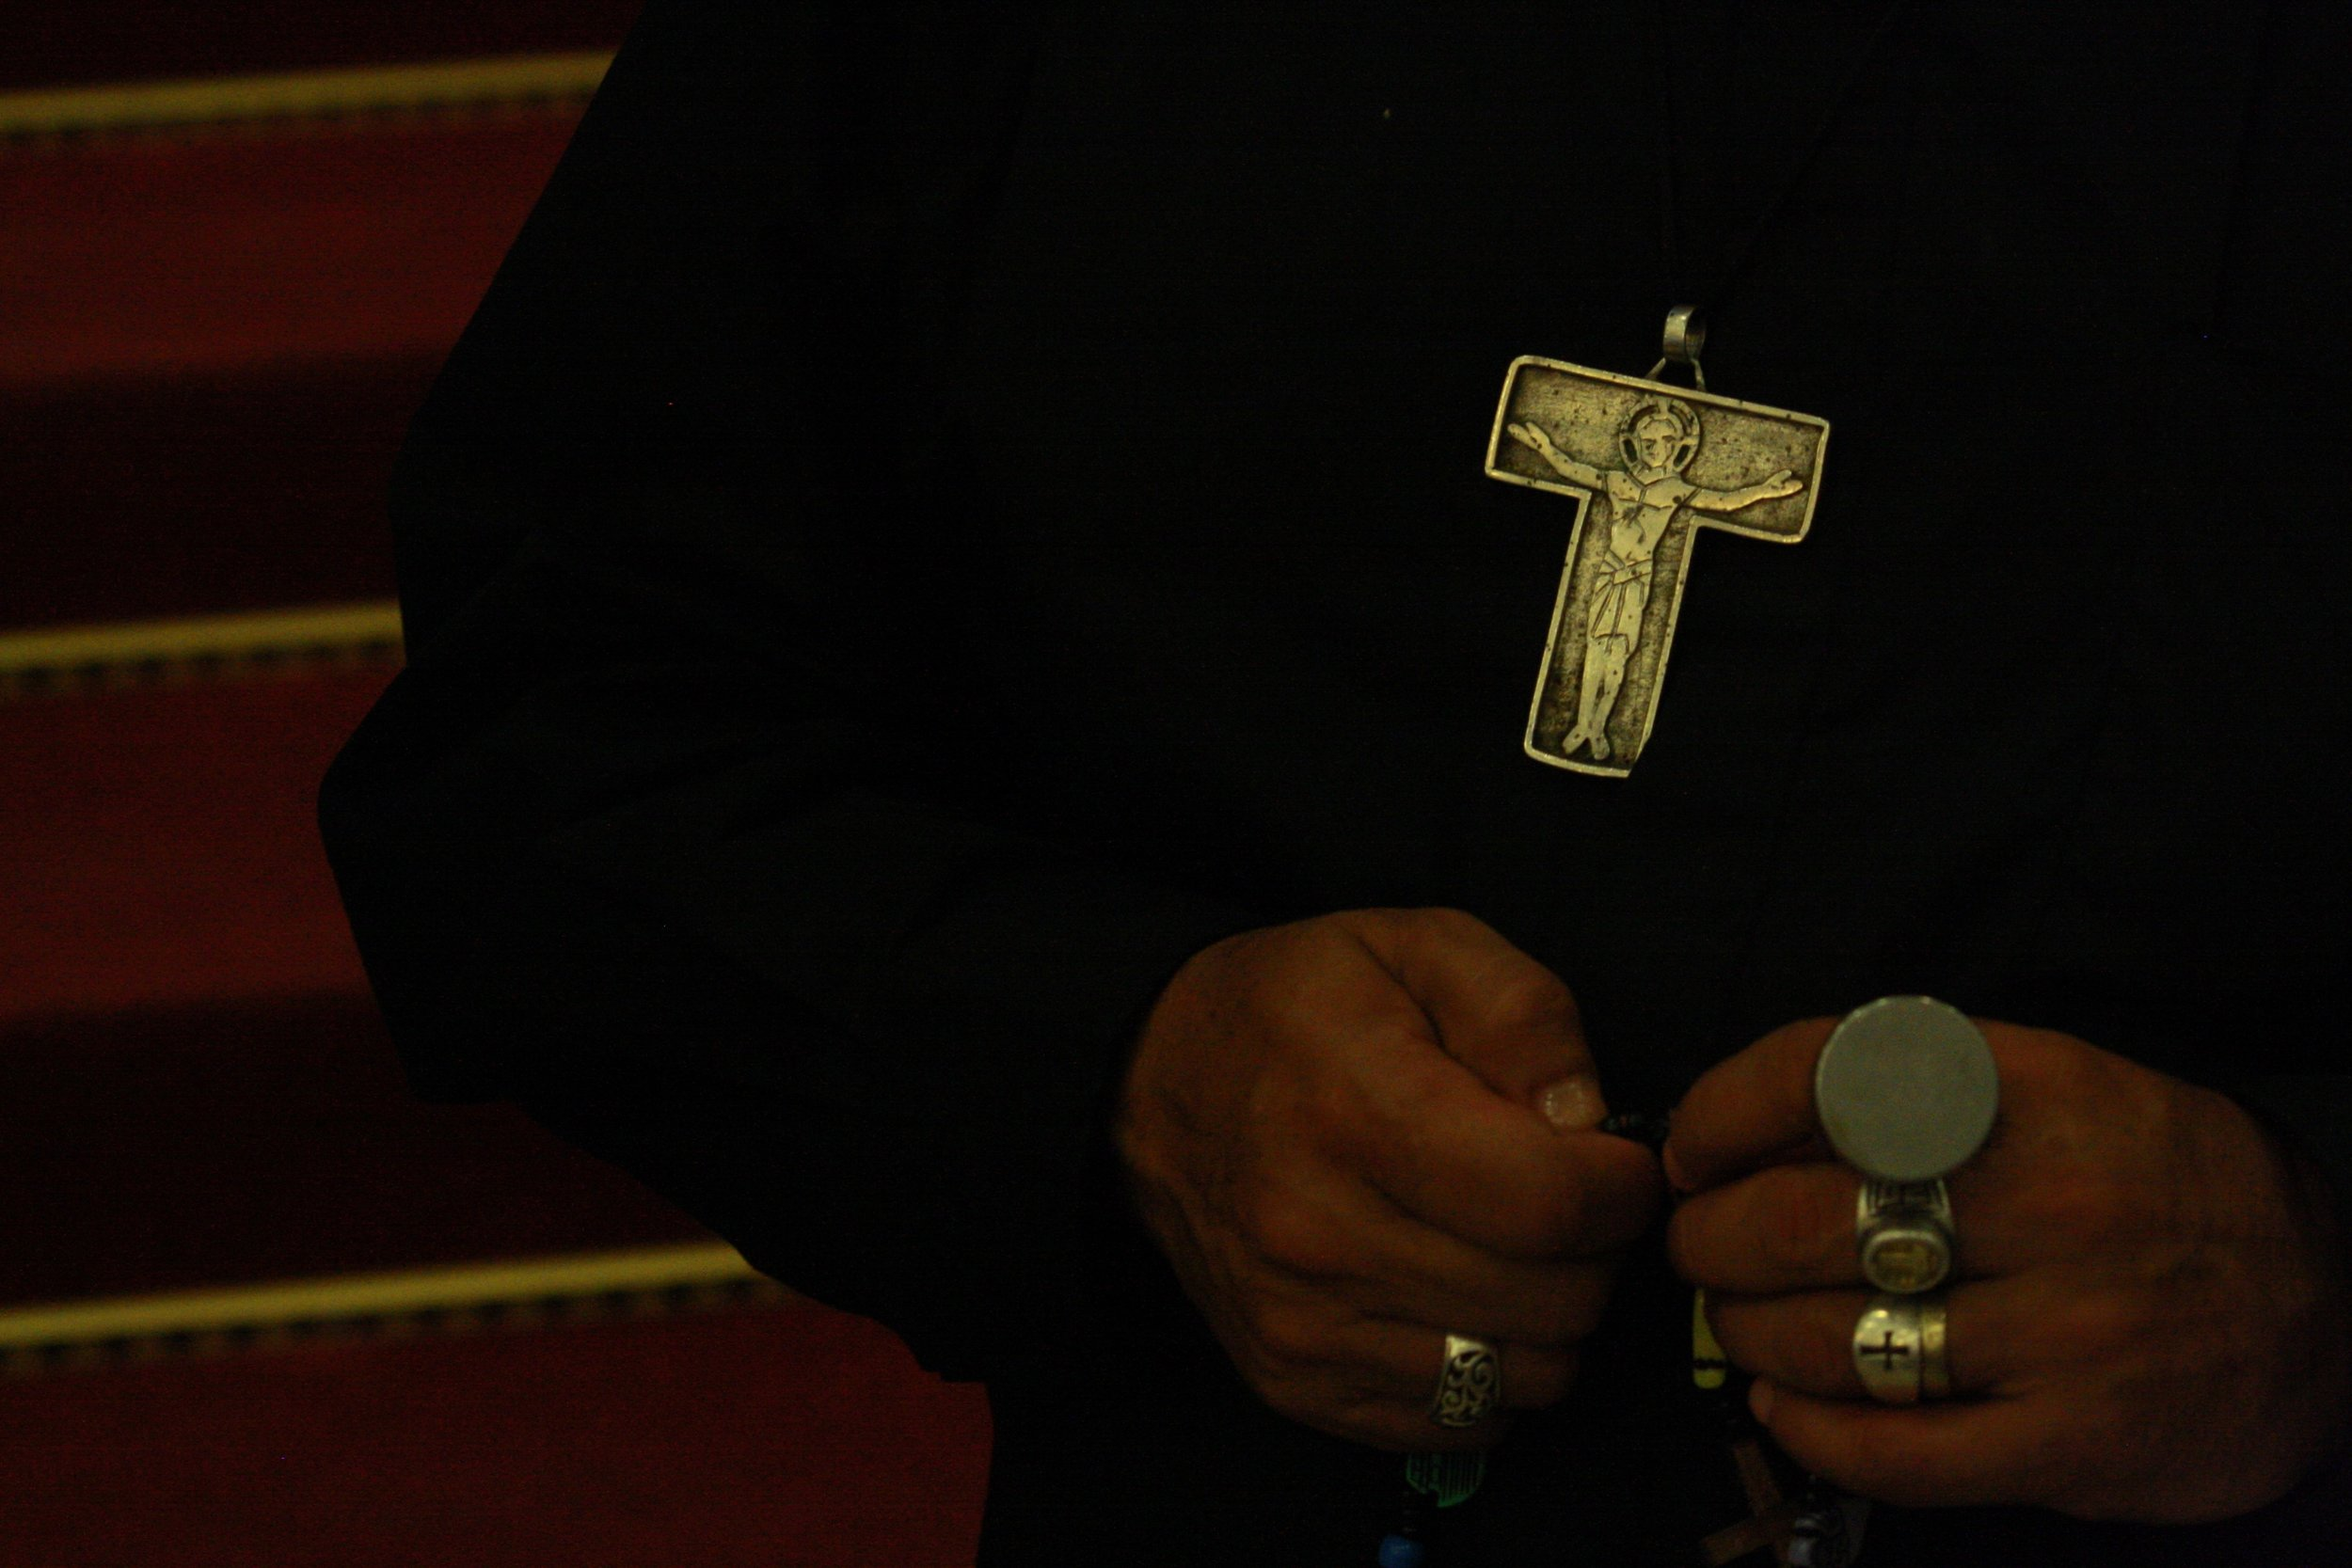 priest hands and cross.jpg